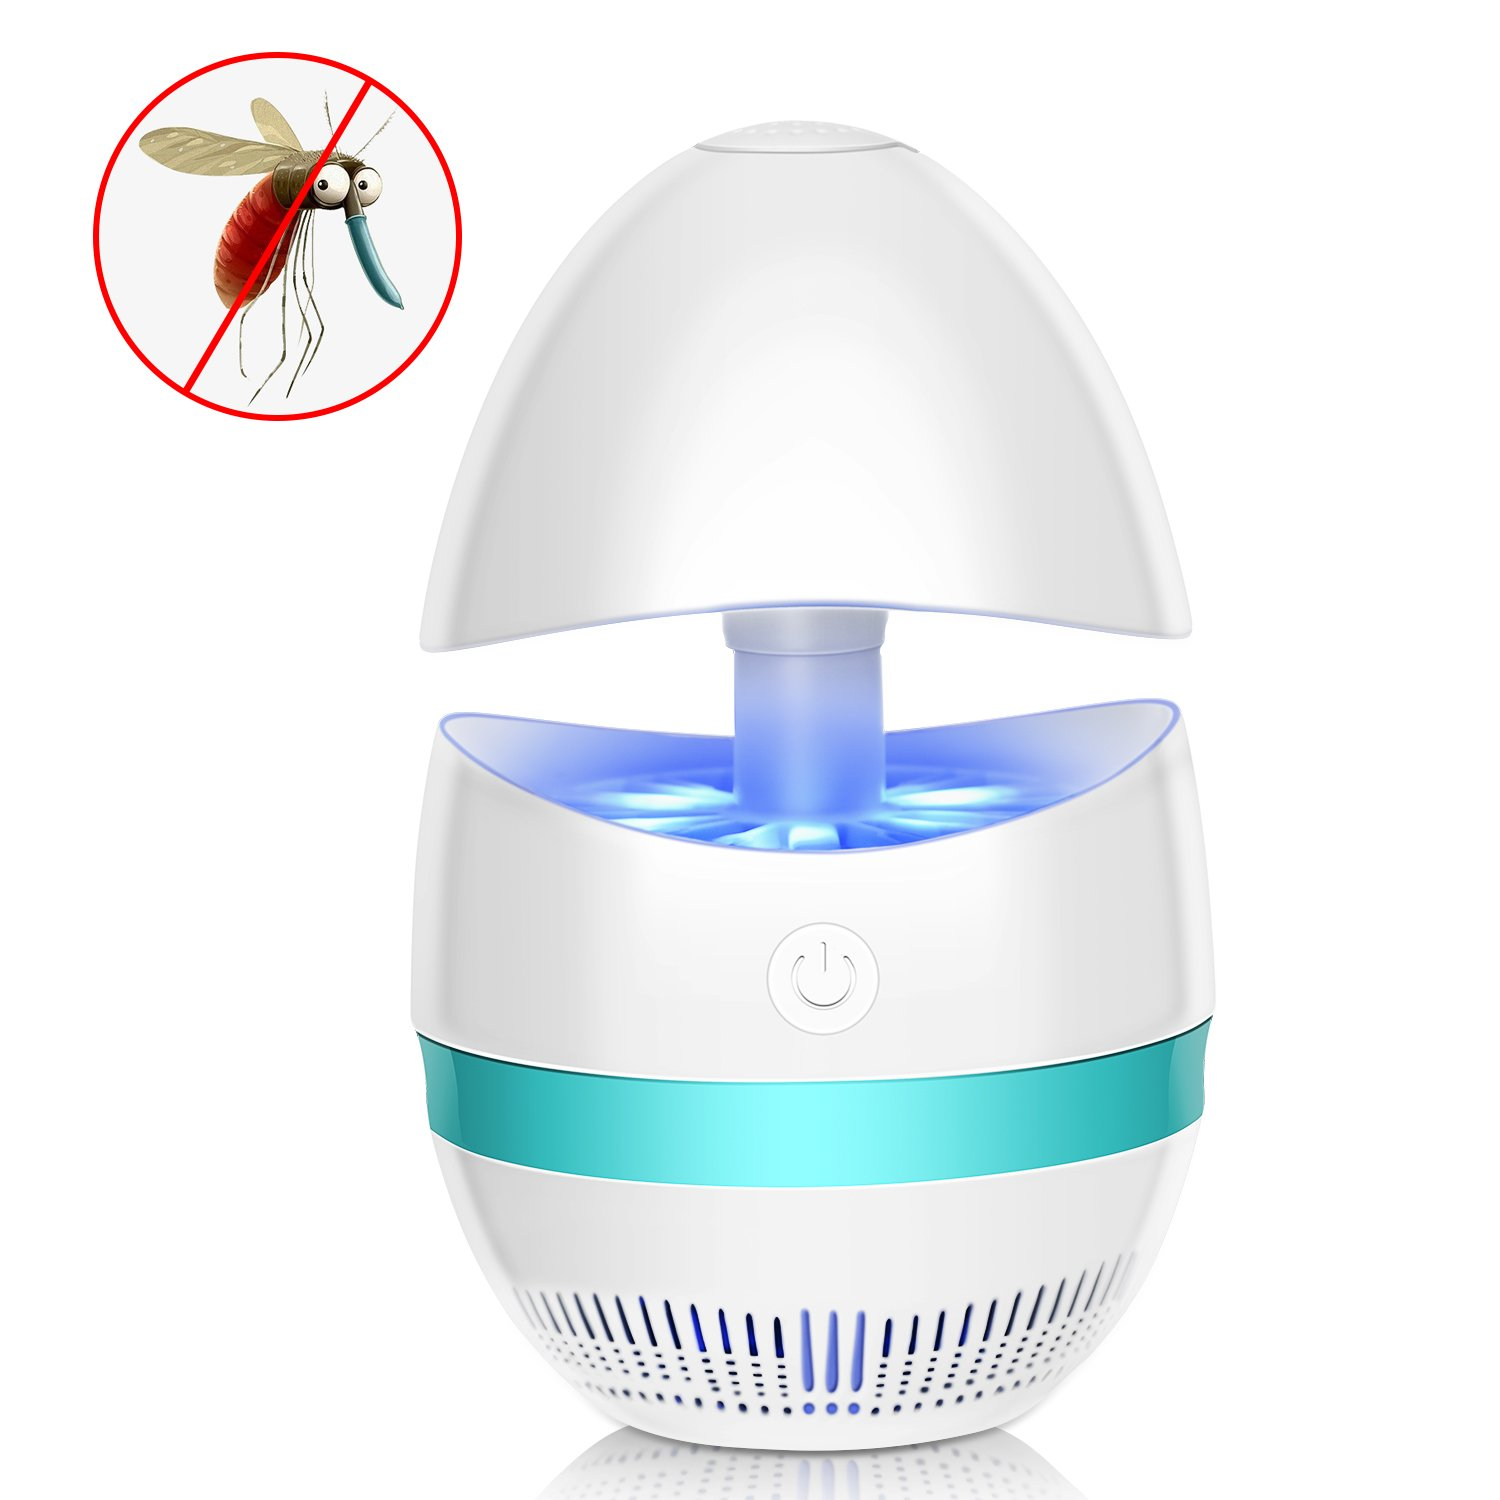 Benewell Indoor Bug Zapper, Electronic Insect Killer, USB Powered Mosquito Zapper Lamp Built with Fan Mosquito Catcher Trap for Office Home Kitchen Restaurant Garden Patio Yard & More (White)